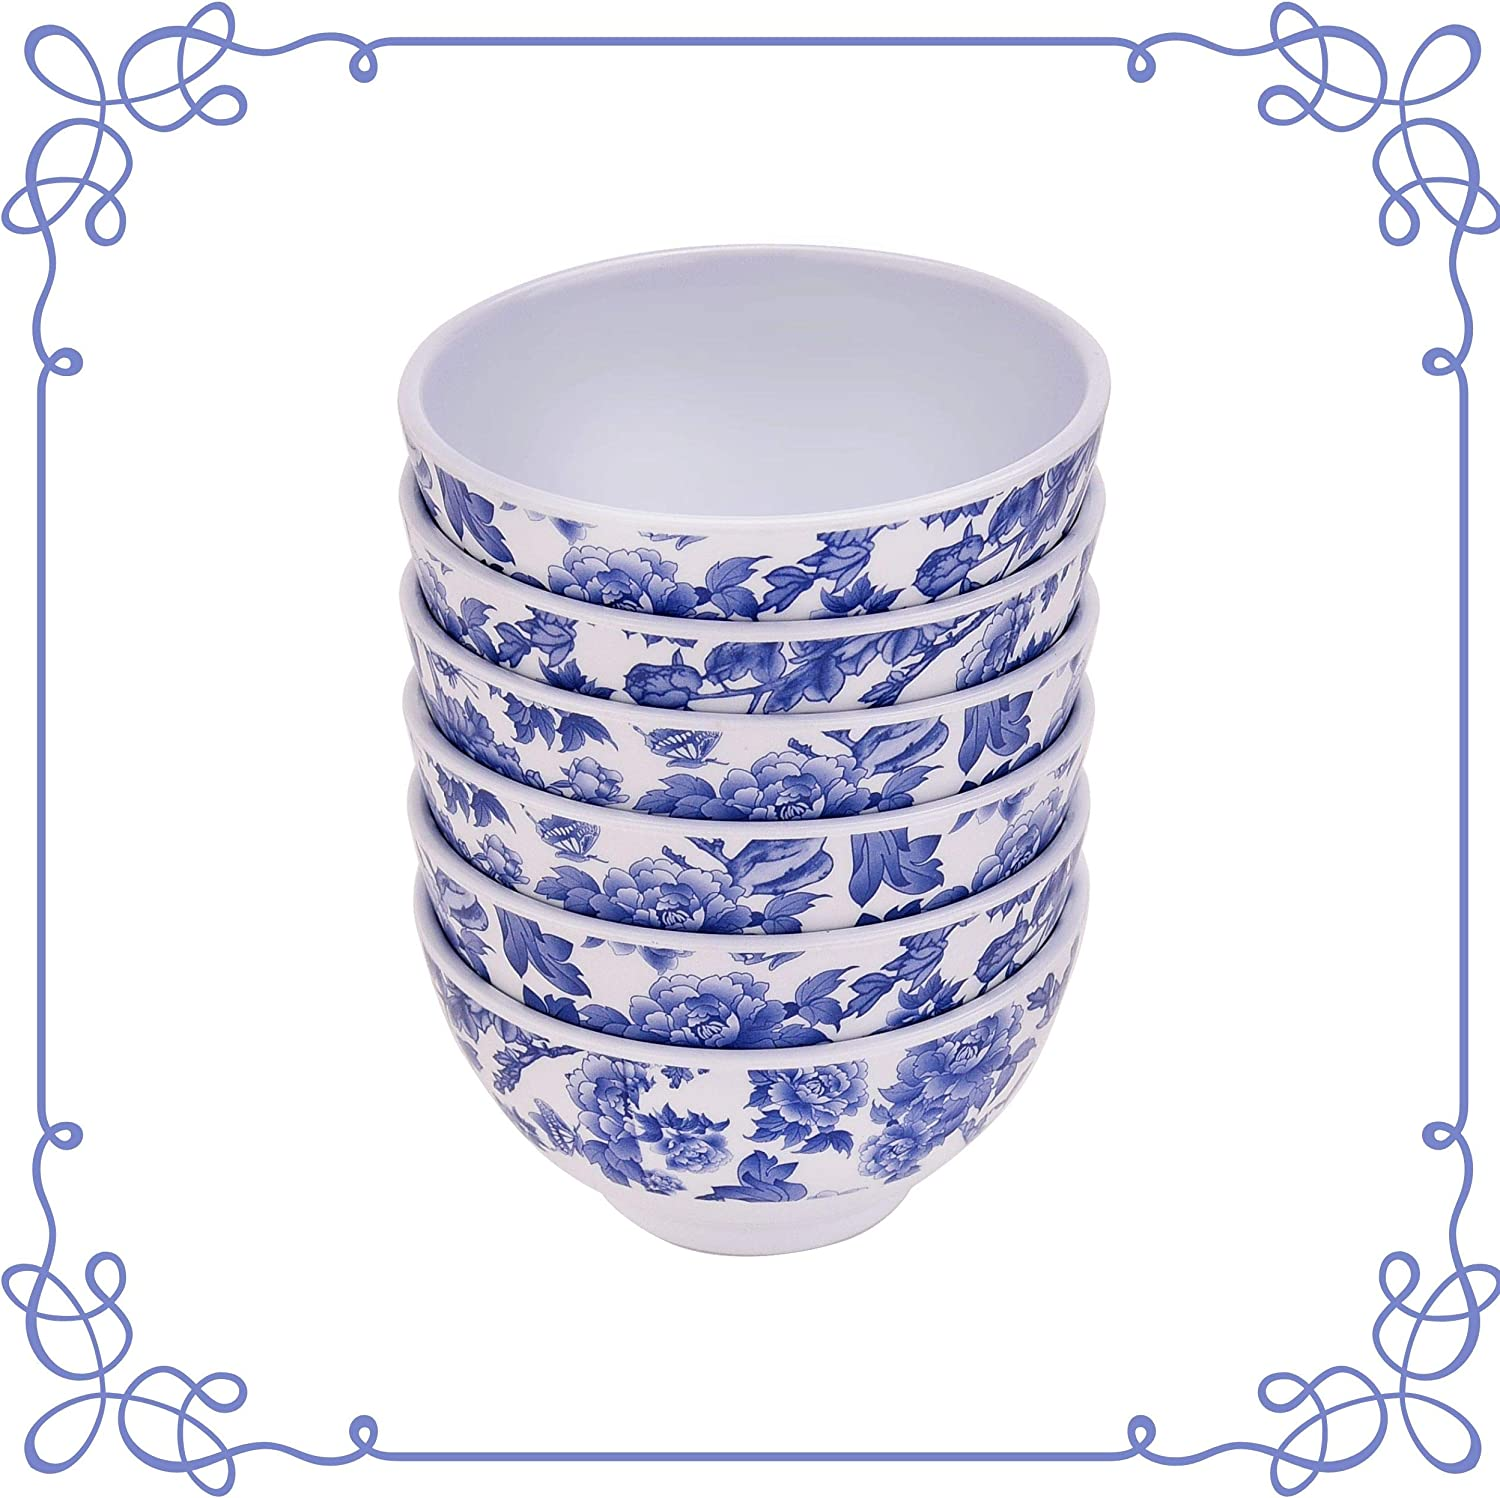 ARC 6600F Melamine dinnerware Deep Bowl NEW before Online limited product selling of 100% 6 set Melamin